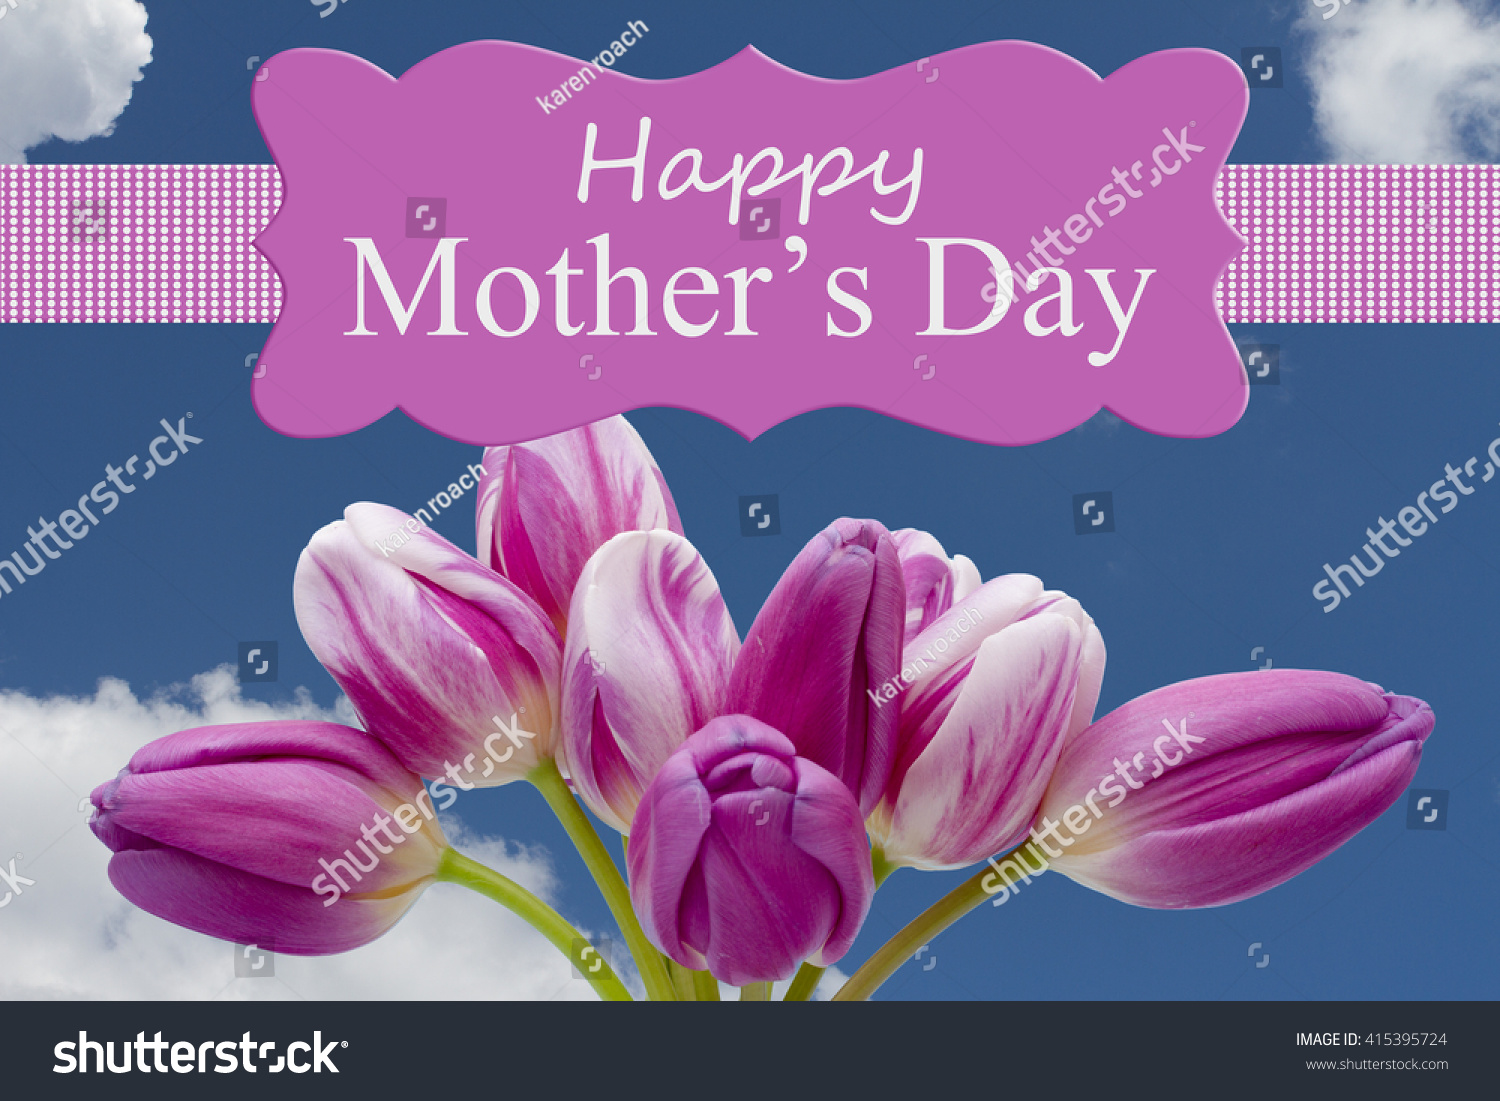 Happy mothers day greeting some tulips stock illustration happy mothers day greeting some tulips stock illustration 415395724 shutterstock kristyandbryce Image collections